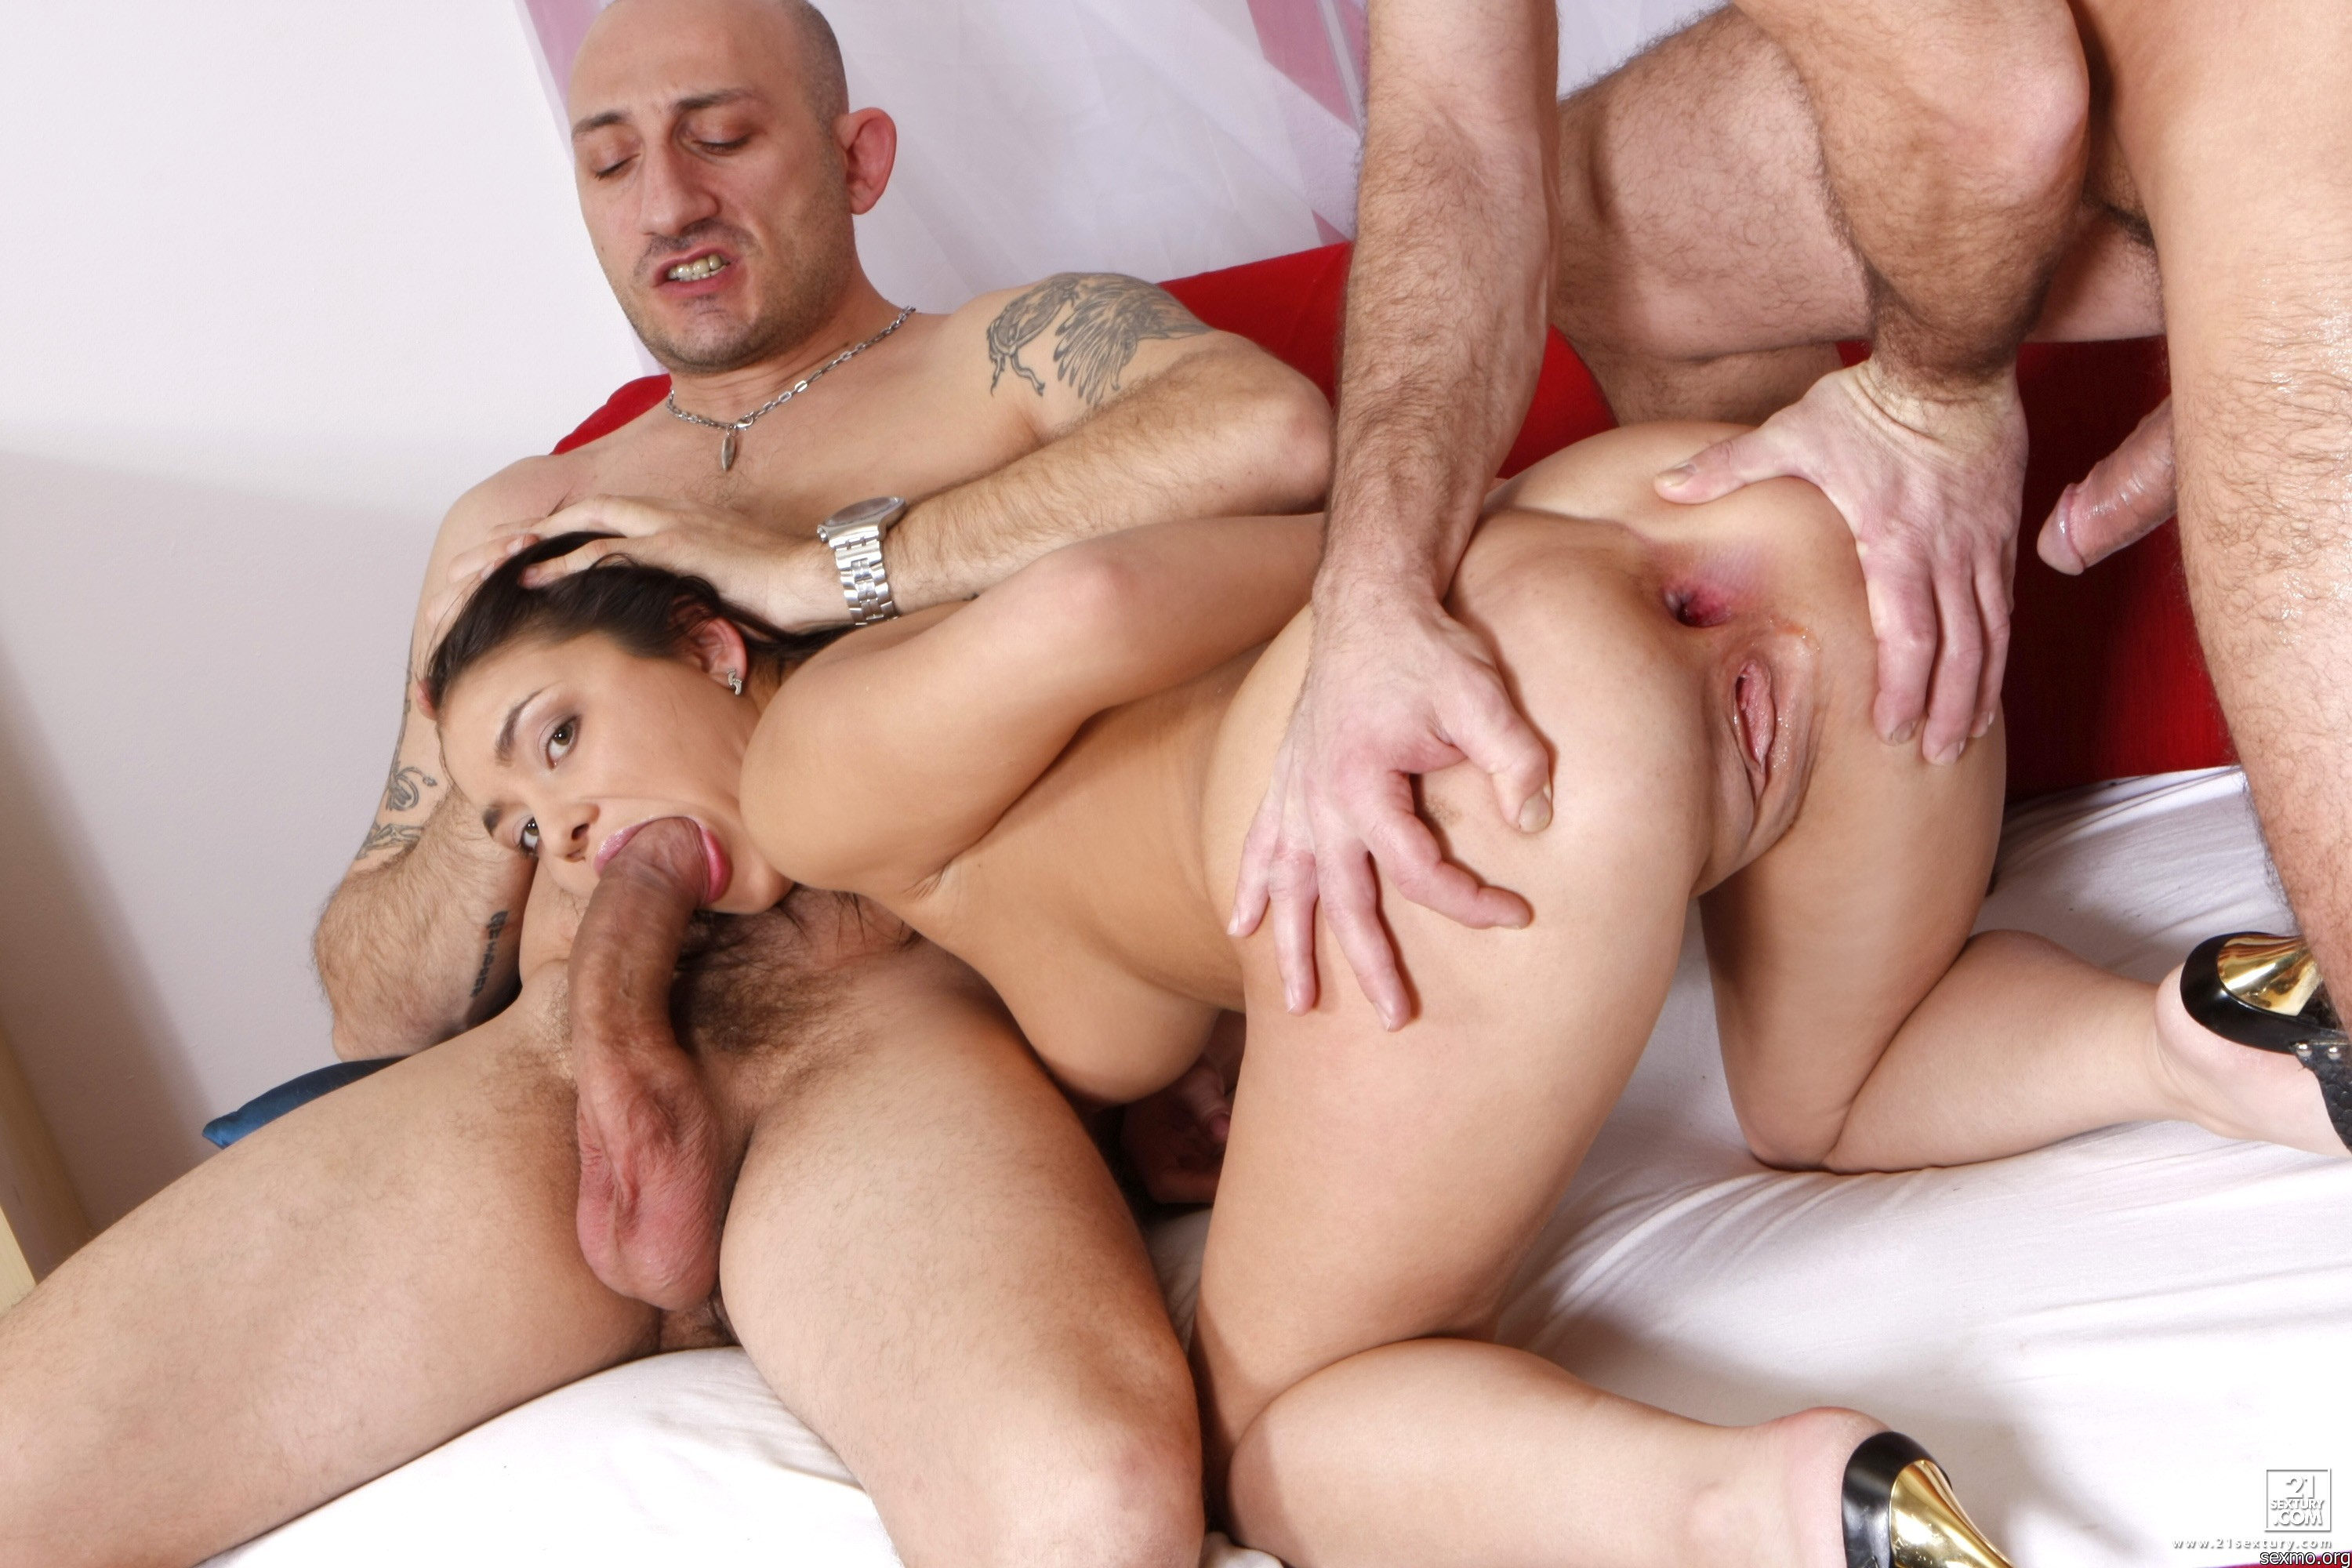 turetskoe-porno-video-onlayn